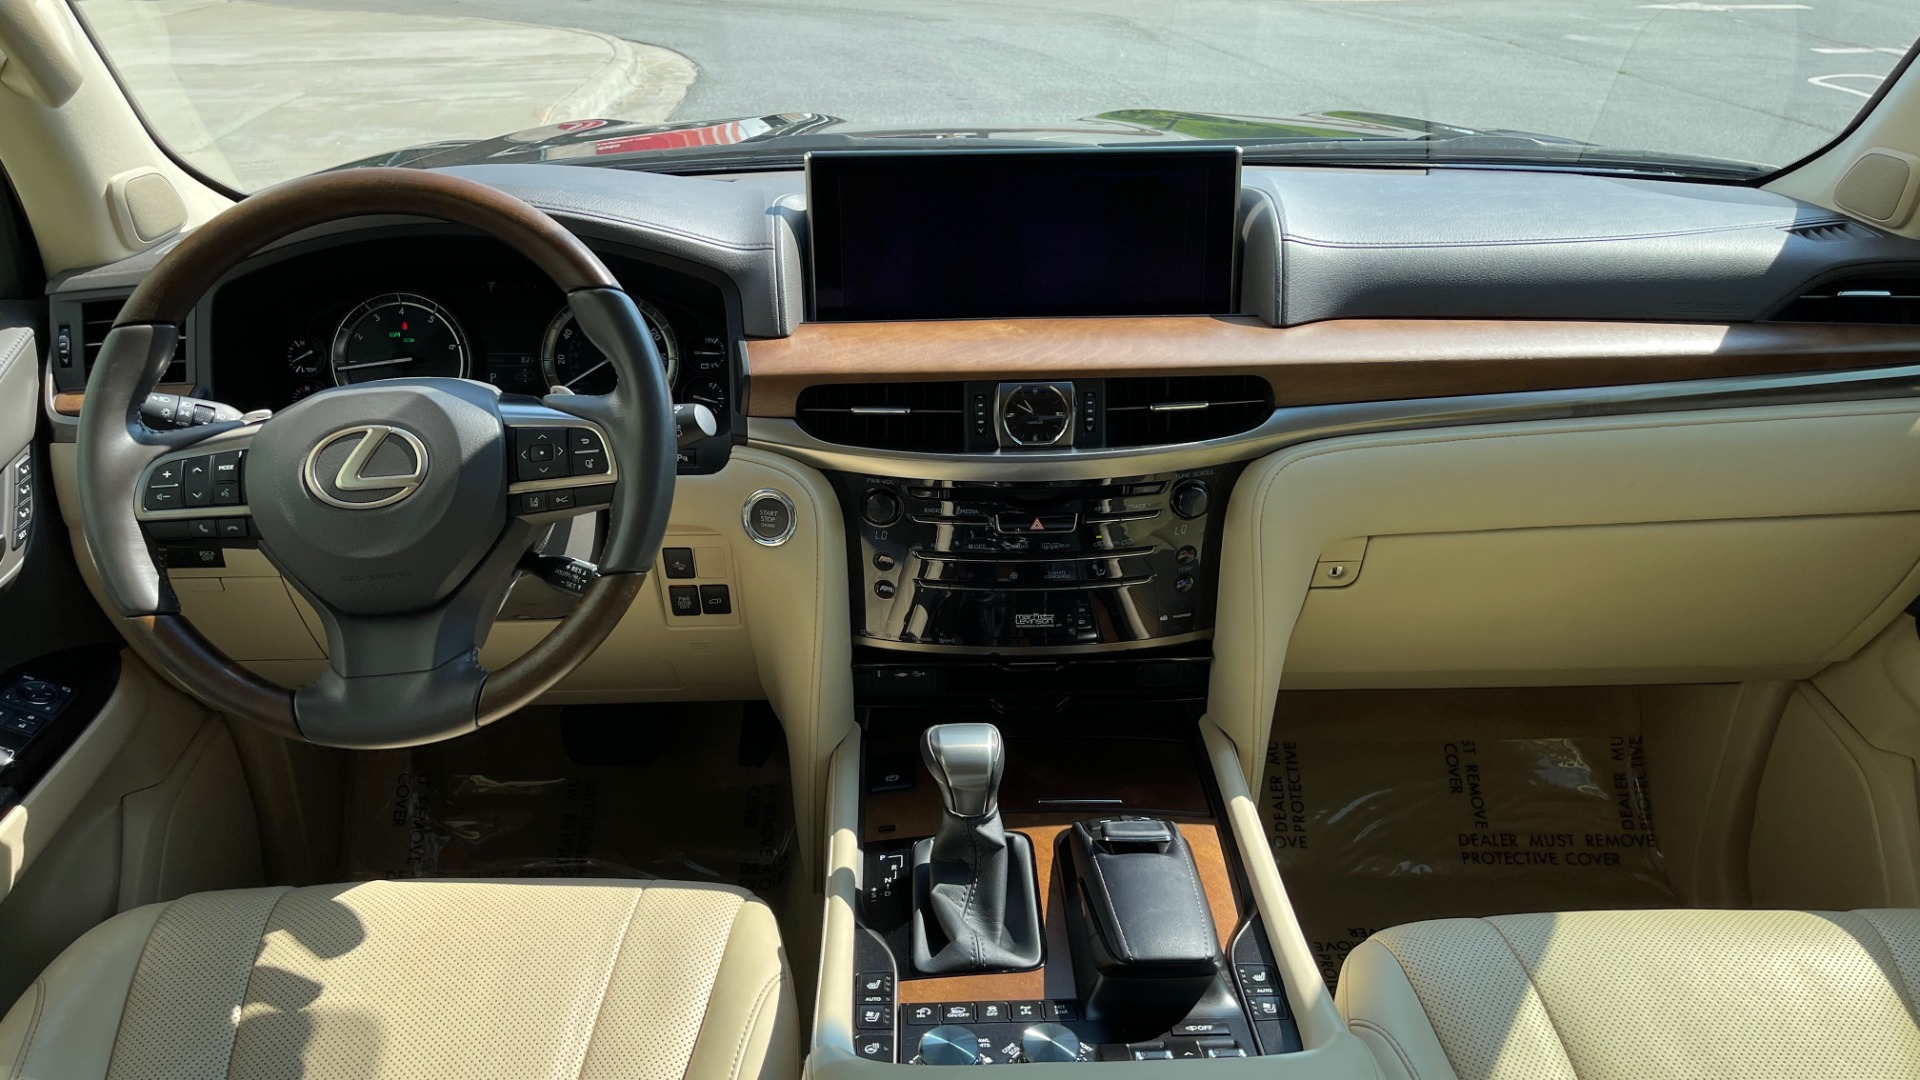 Used 2017 Lexus LX 570 LUXURY / 5.7L V8 / NAV / SUNROOF / 3-ROW / DVD / REARVIEW for sale $63,995 at Formula Imports in Charlotte NC 28227 63